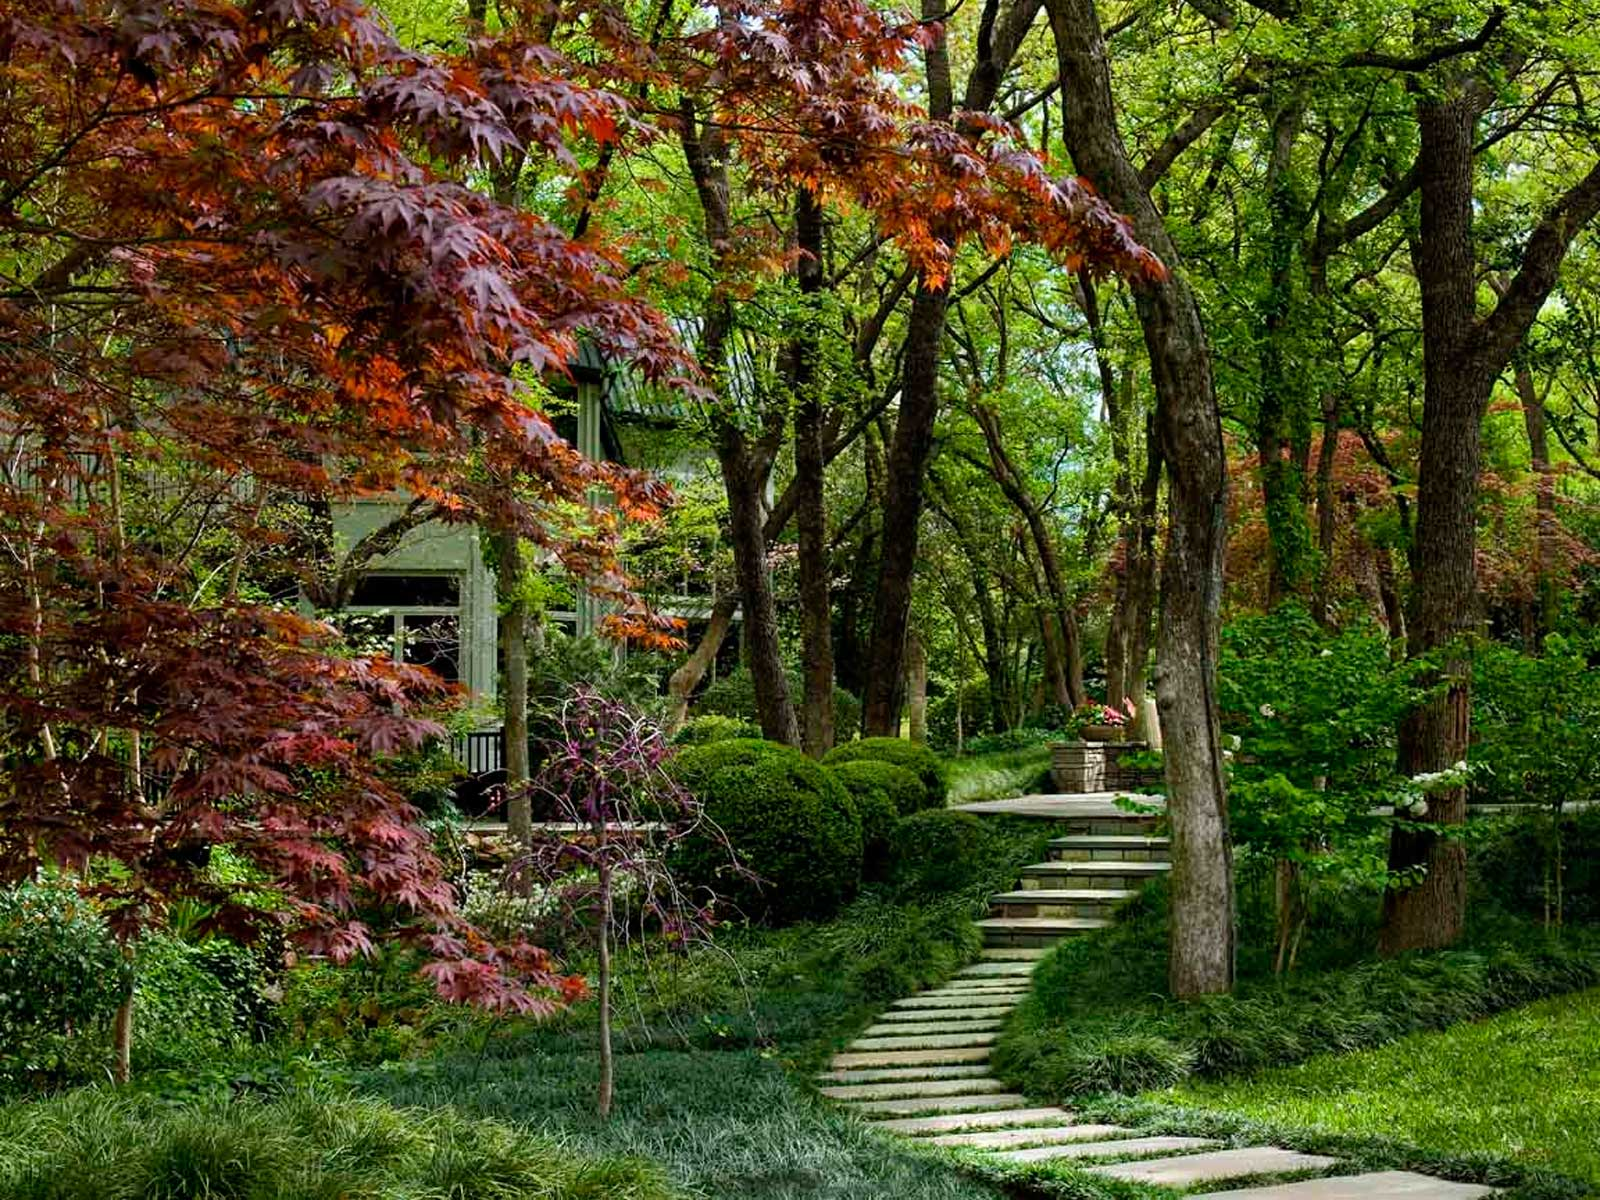 brown_garden-path.jpg